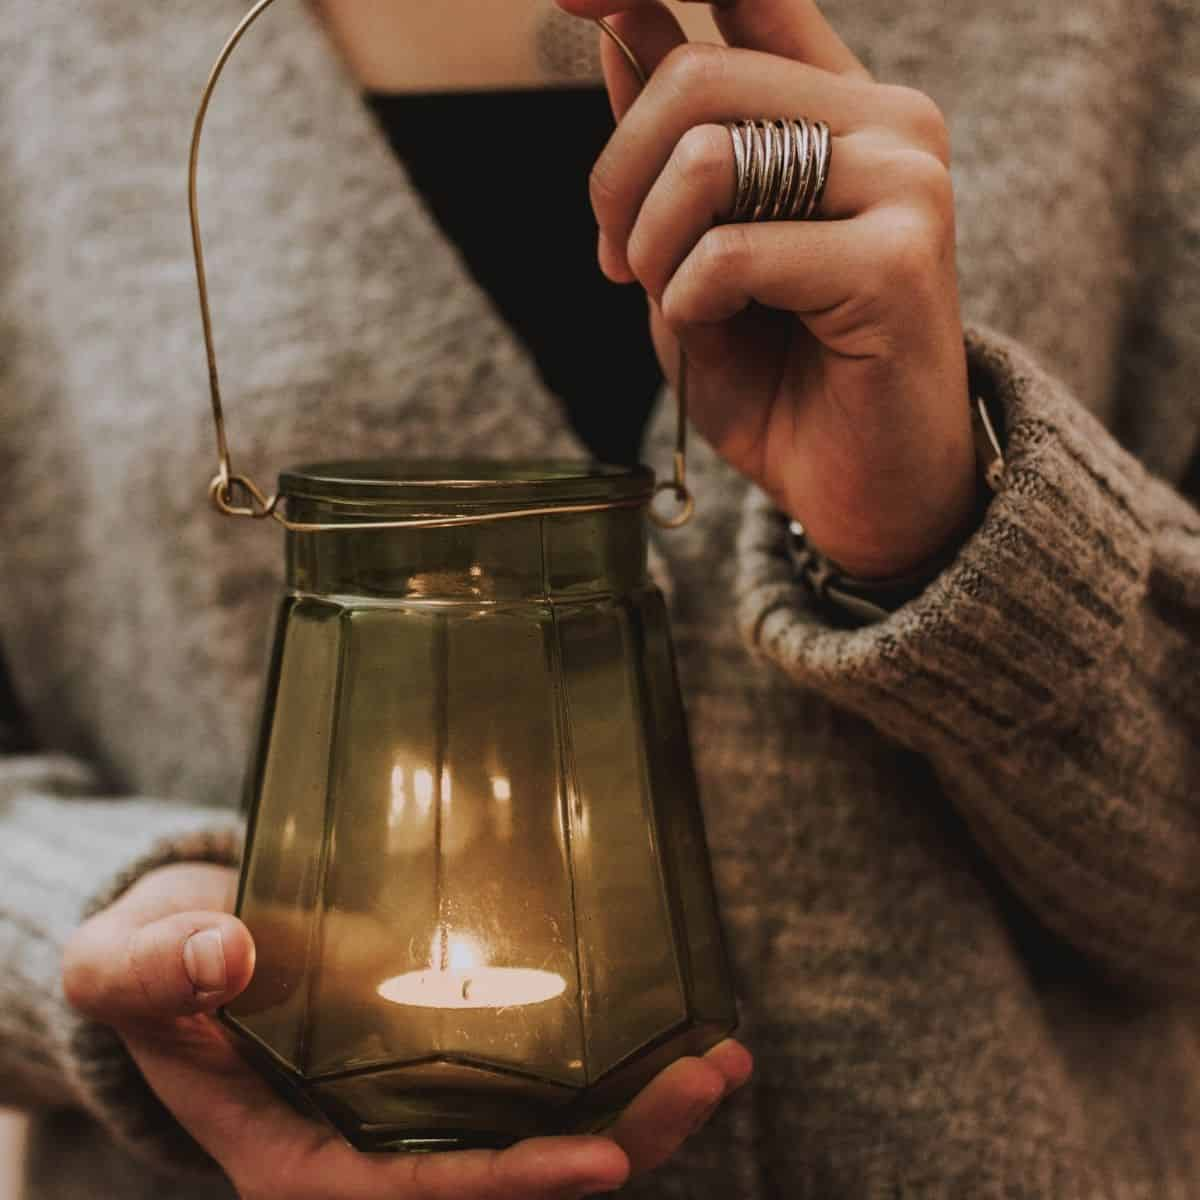 hands holding candle lamp